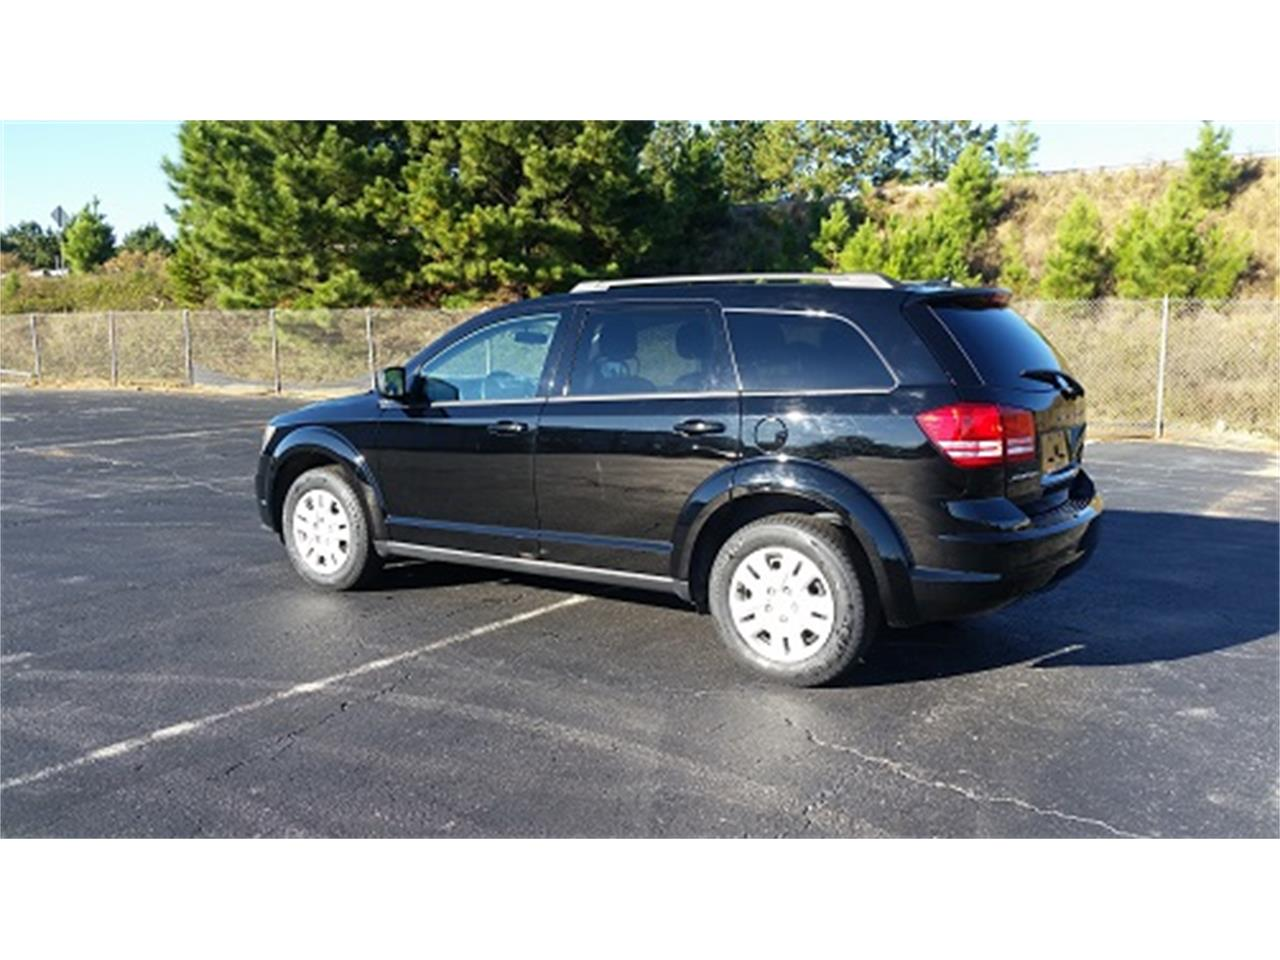 2017 Dodge Journey (CC-1165658) for sale in Simpsonville, South Carolina